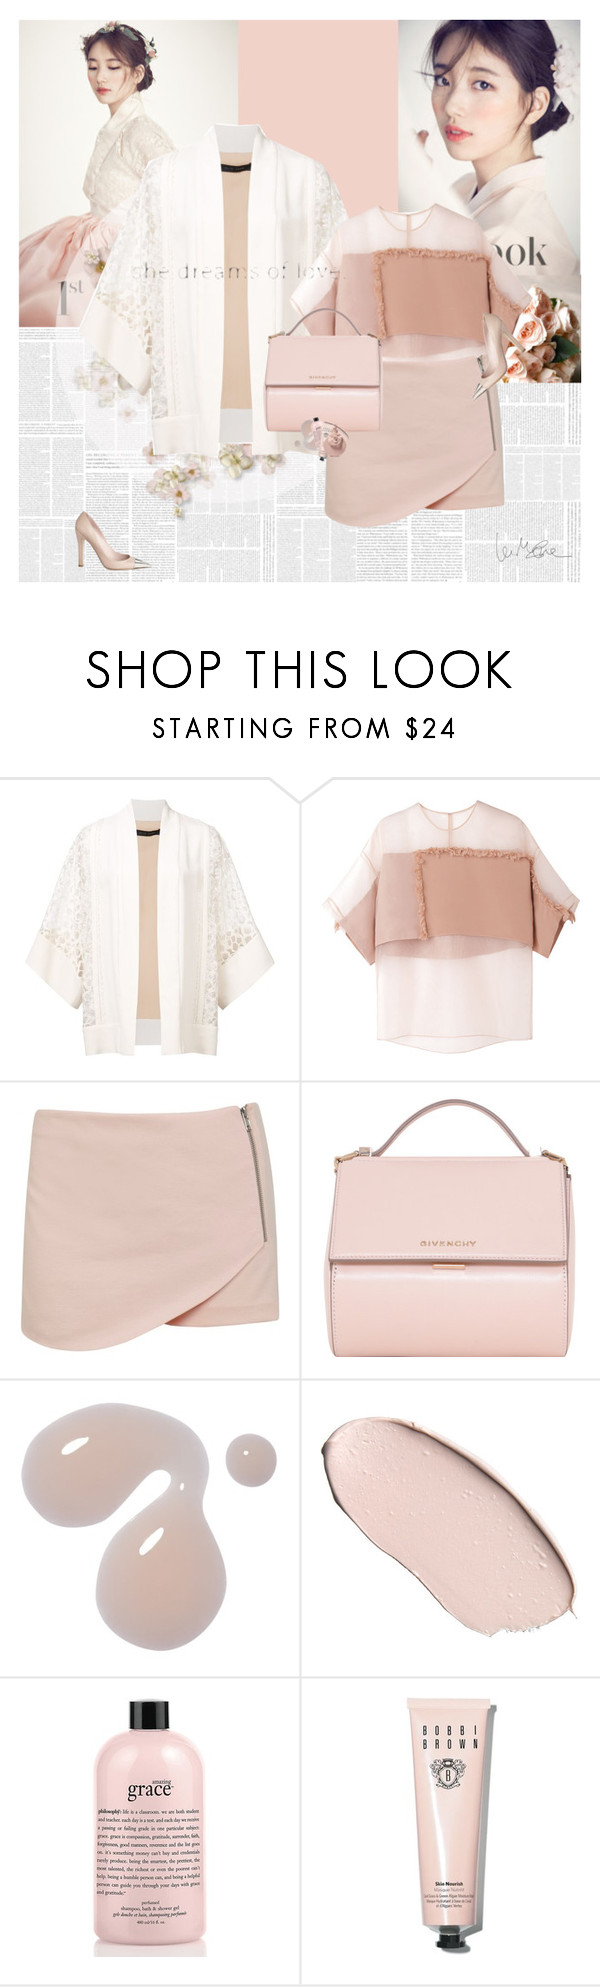 """""""Spring Dreaming"""" by e-laysian ❤ liked on Polyvore featuring Prada, Elie Saab, 3.1 Phillip Lim, Miss Selfridge, Givenchy, philosophy, Bobbi Brown Cosmetics, Valentino and Louis Vuitton"""